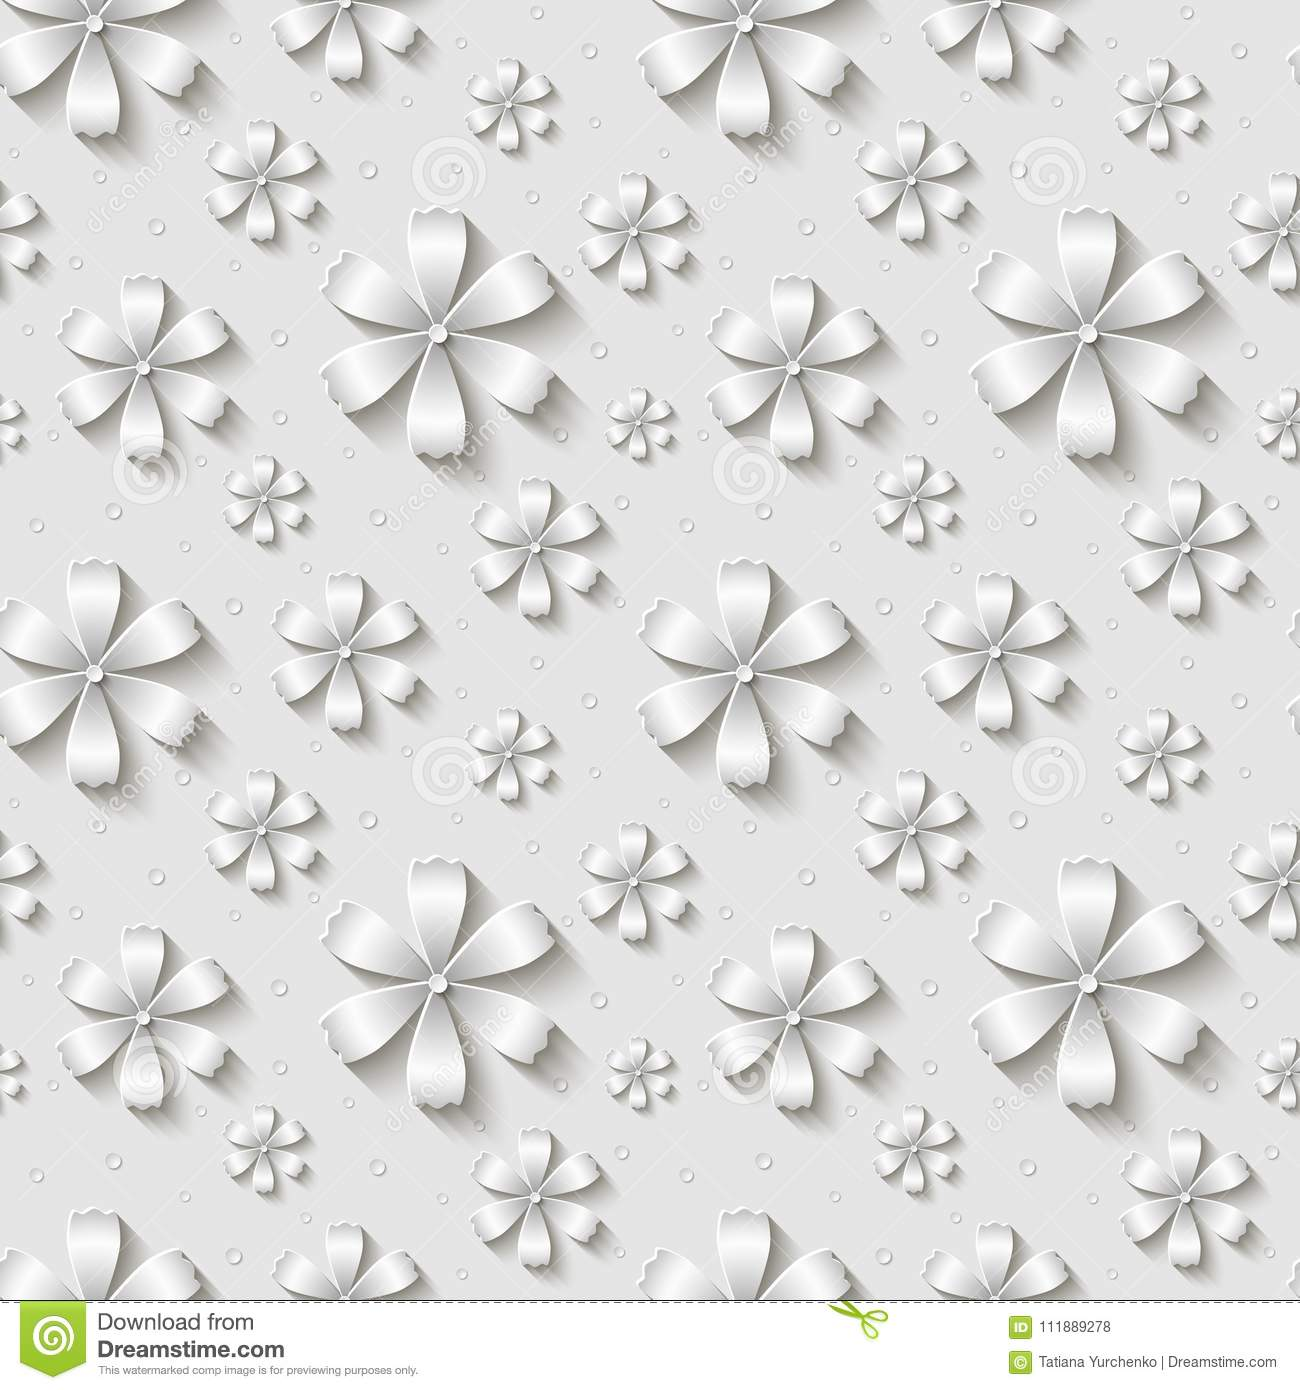 Vector Seamless Floral Pattern Background With 3d White Paper Cut